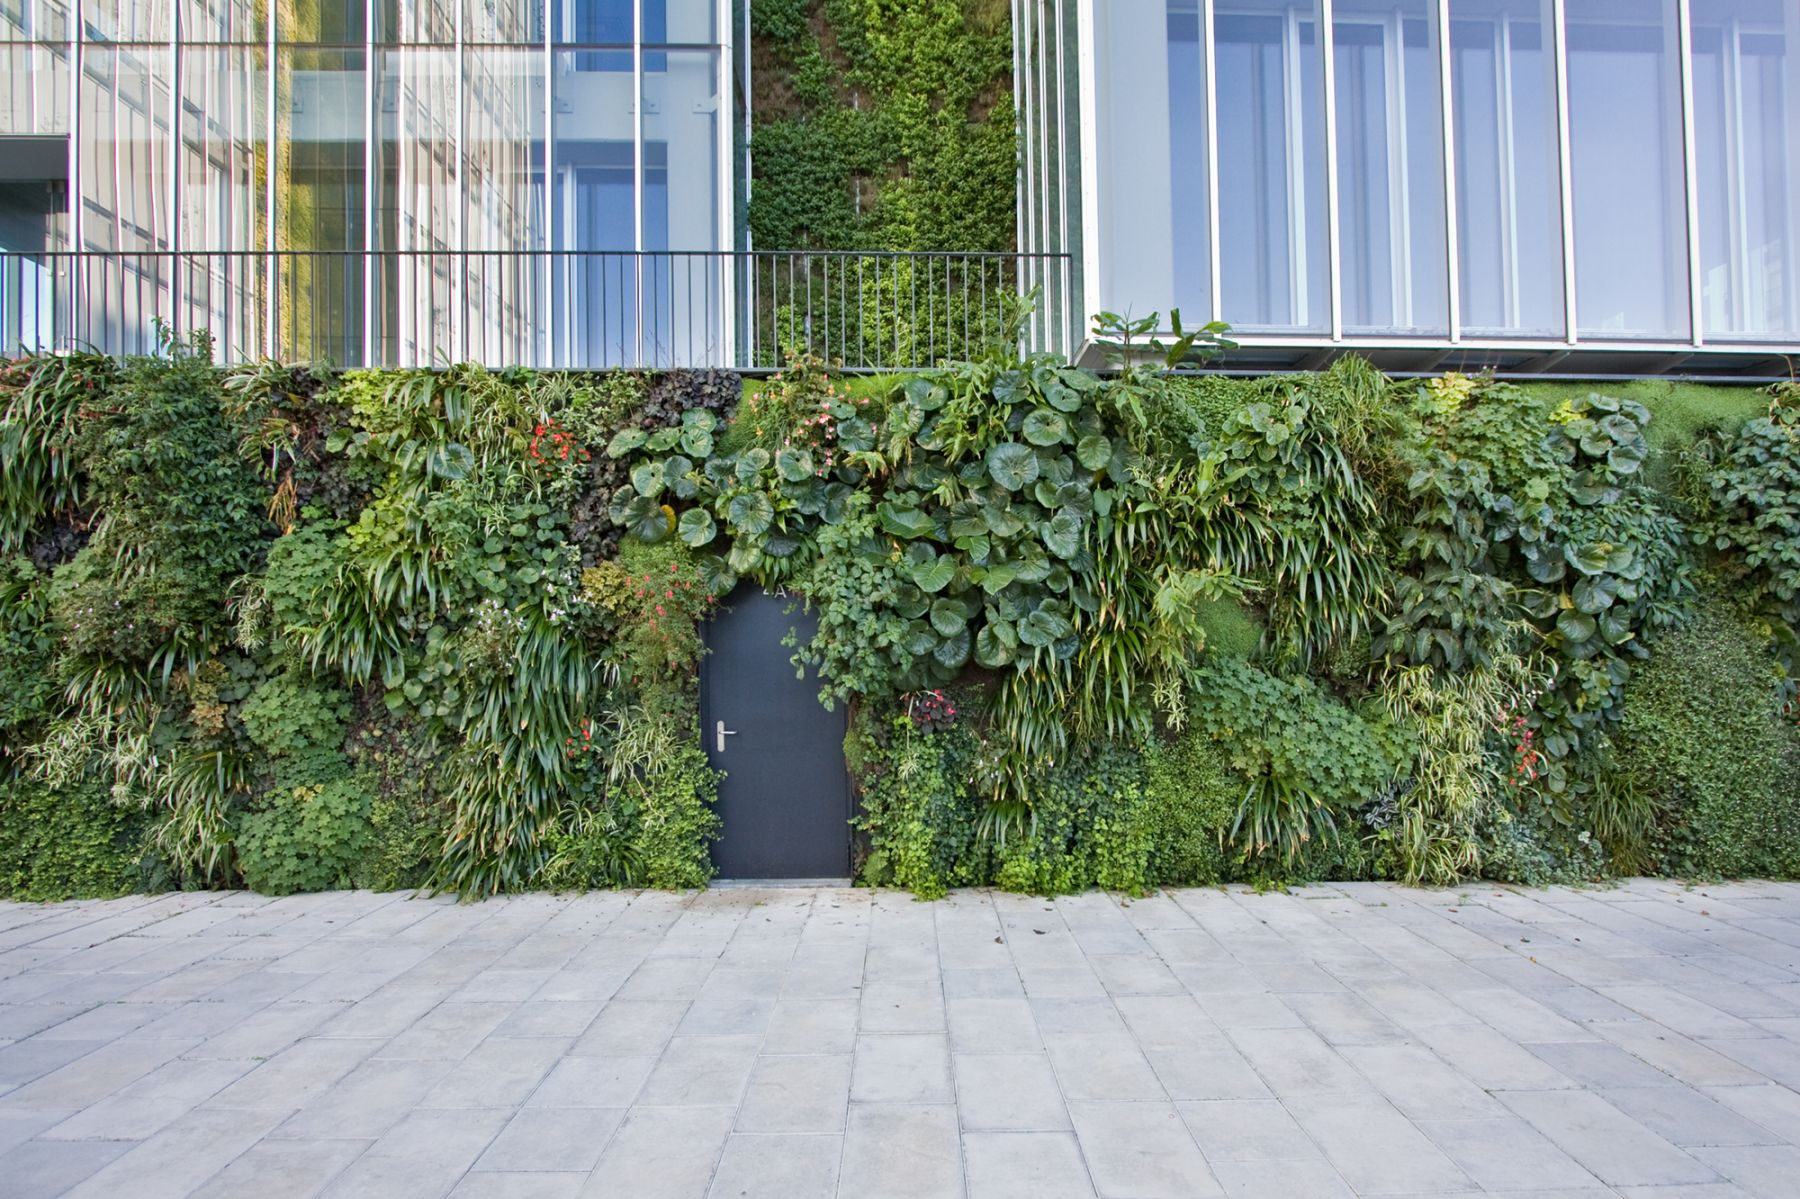 Natura-Towers_Vertical-Garden-Design_Jardim-vertical_Lisboa_Portugal_3.jpg